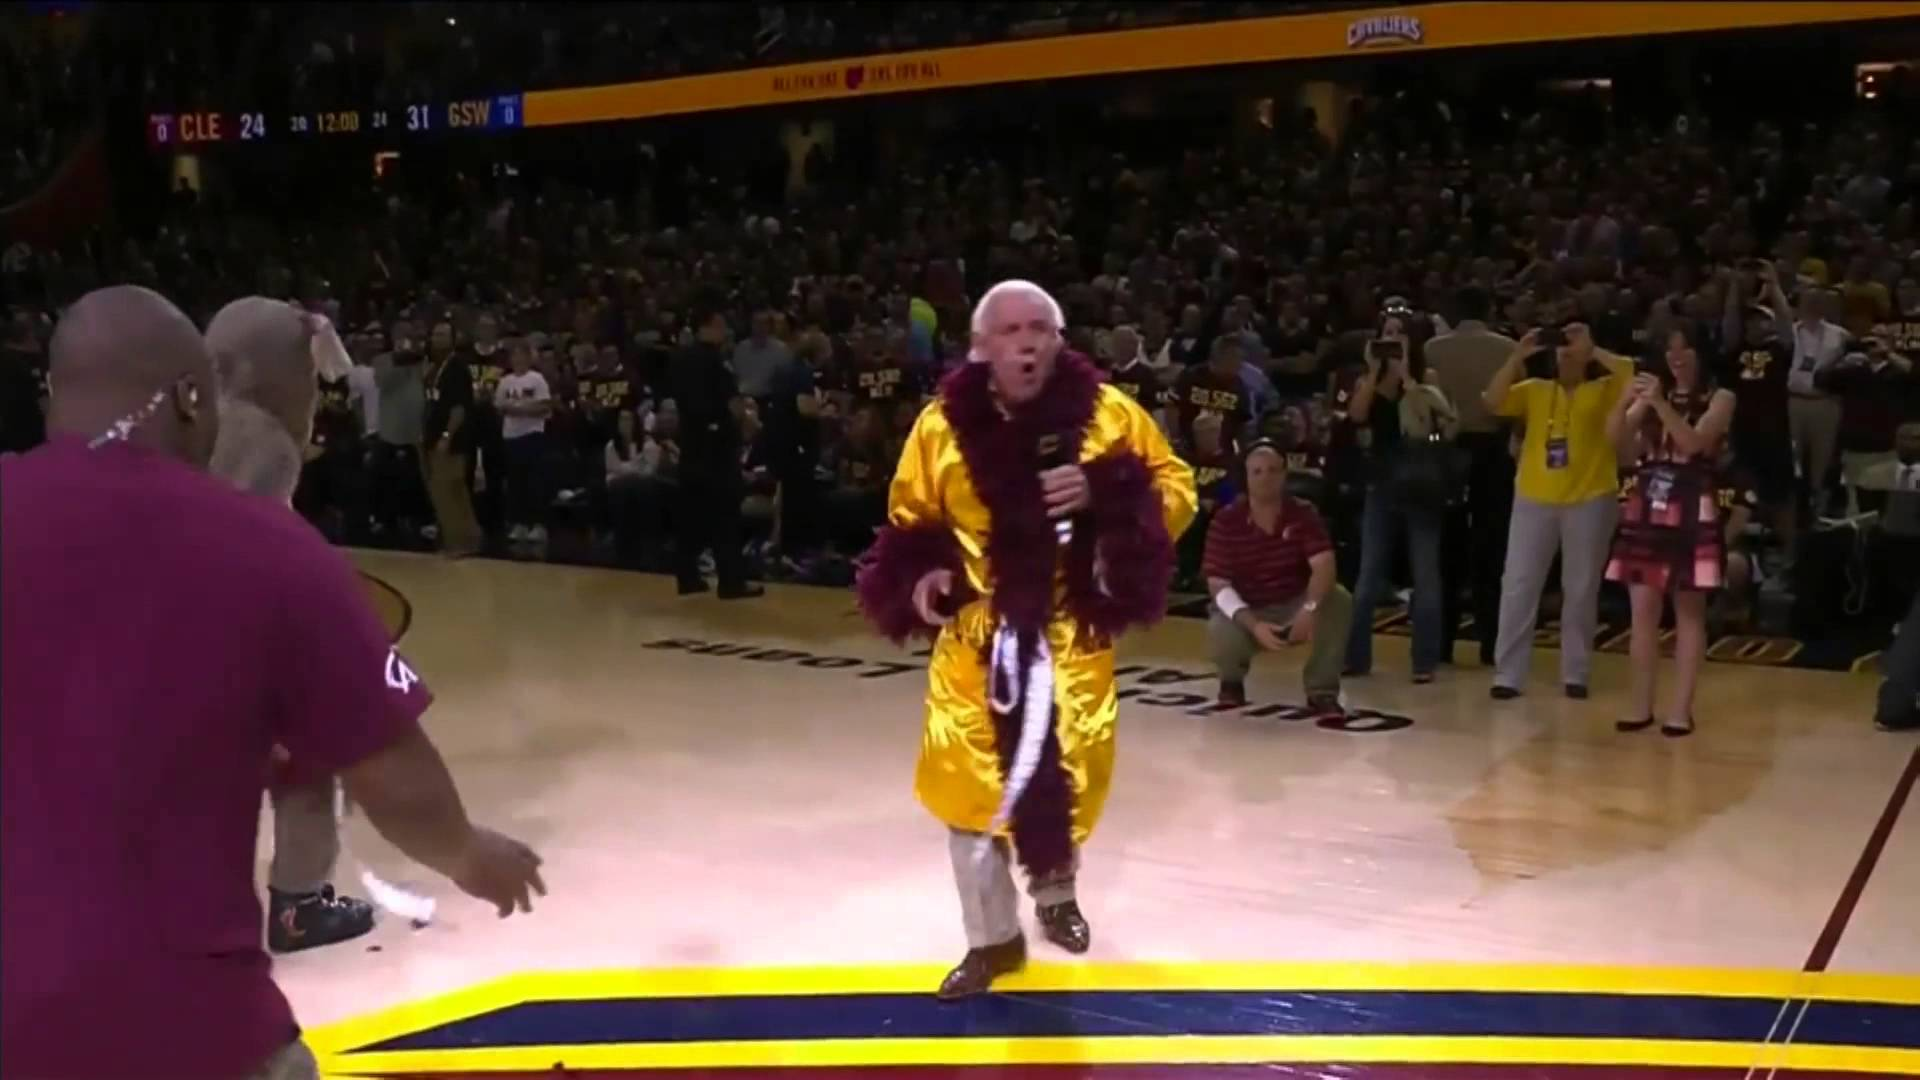 Ric Flair fires up the Cleveland crowd for Game 4 of the NBA Finals